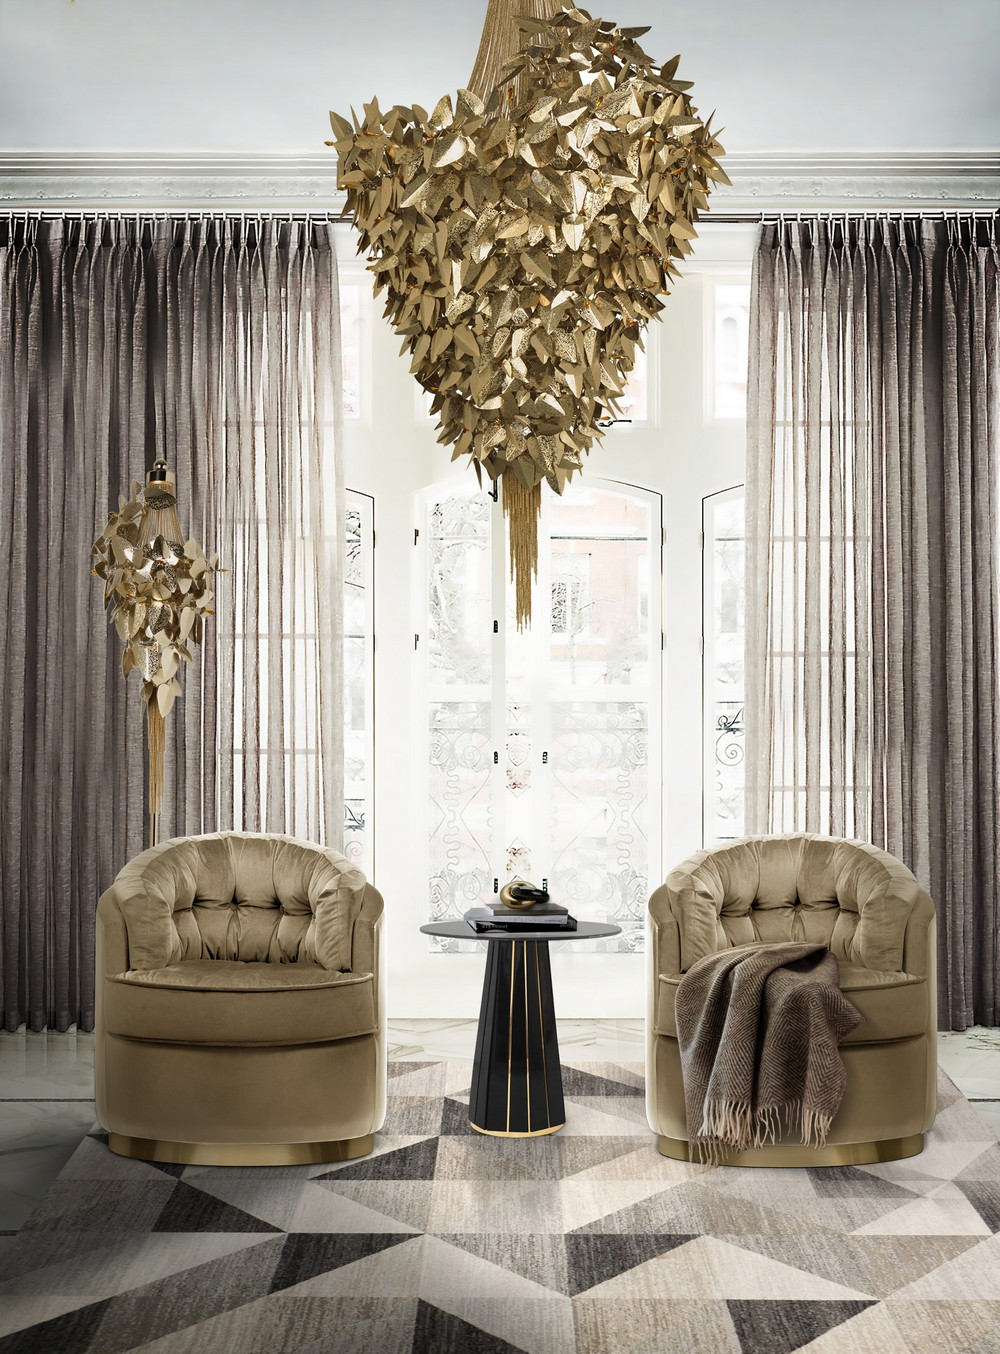 Improve Your Home Decoration with Marvelous Lighting Trends for 2020 7 lighting trends for 2020 Improve Your Home Decoration with Marvelous Lighting Trends for 2020 Improve Your Home Decoration with Marvelous Lighting Trends for 2020 7